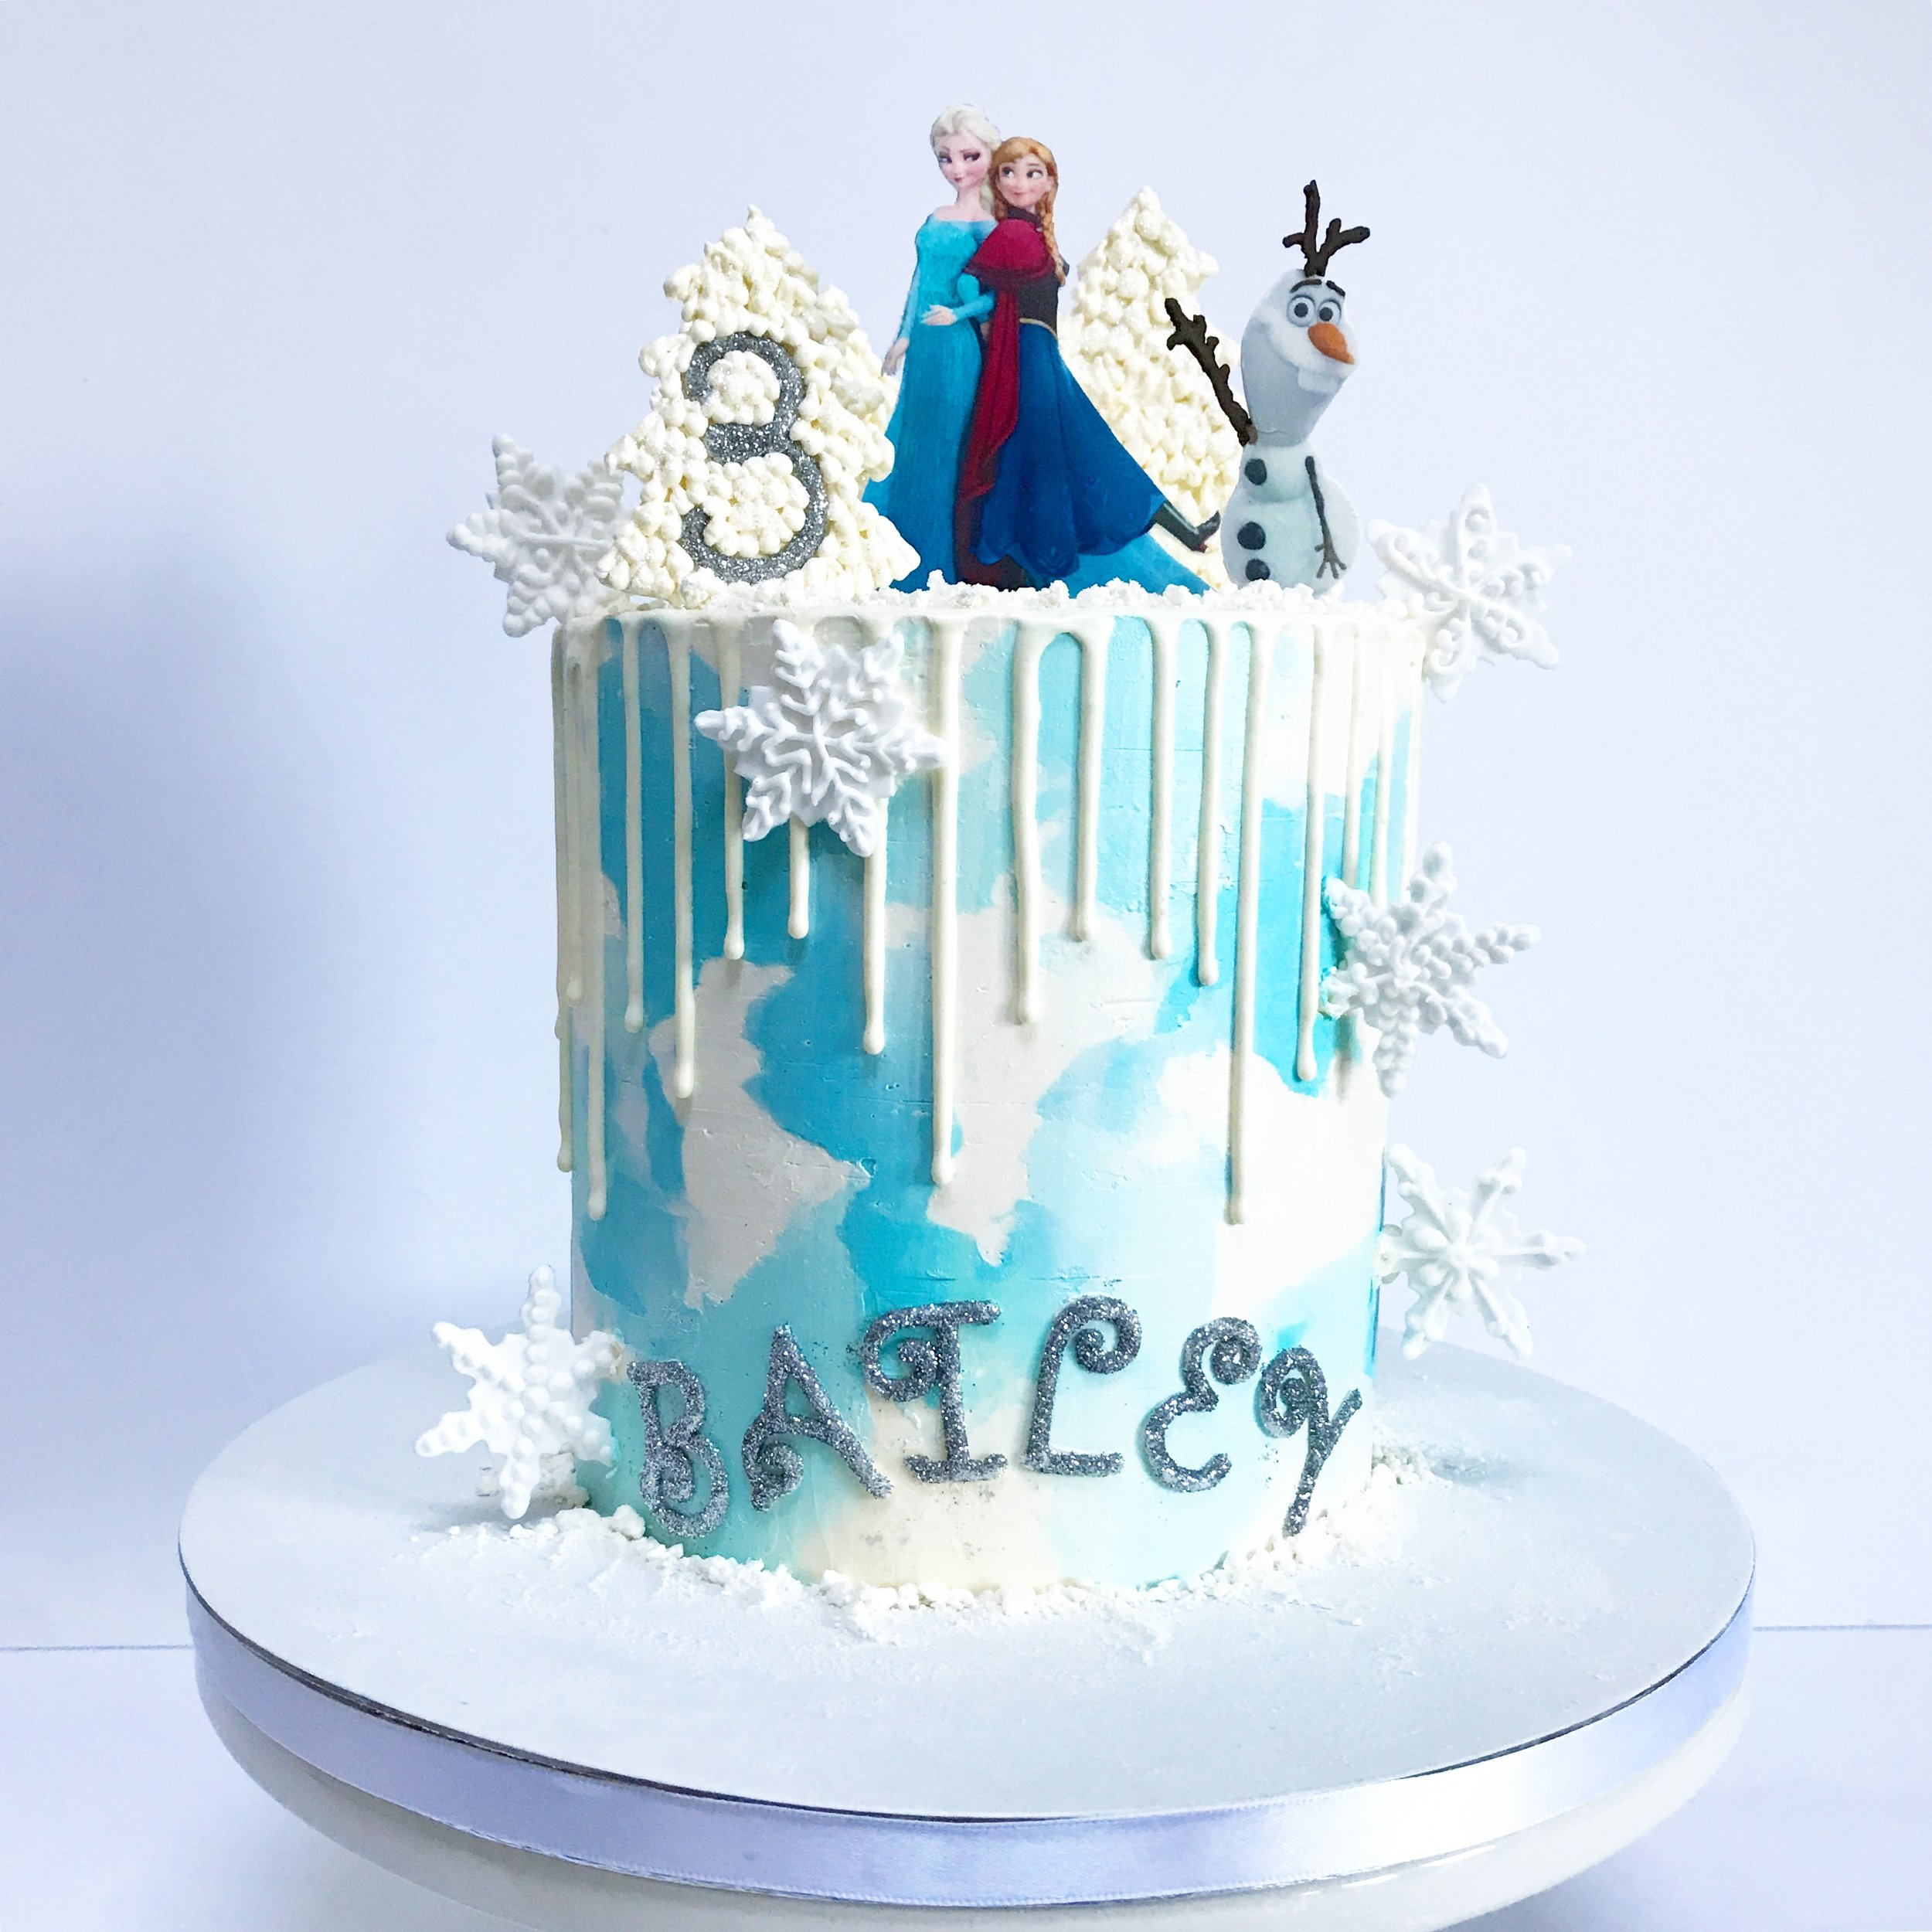 Frozen 3rd Birthday Cake.JPG